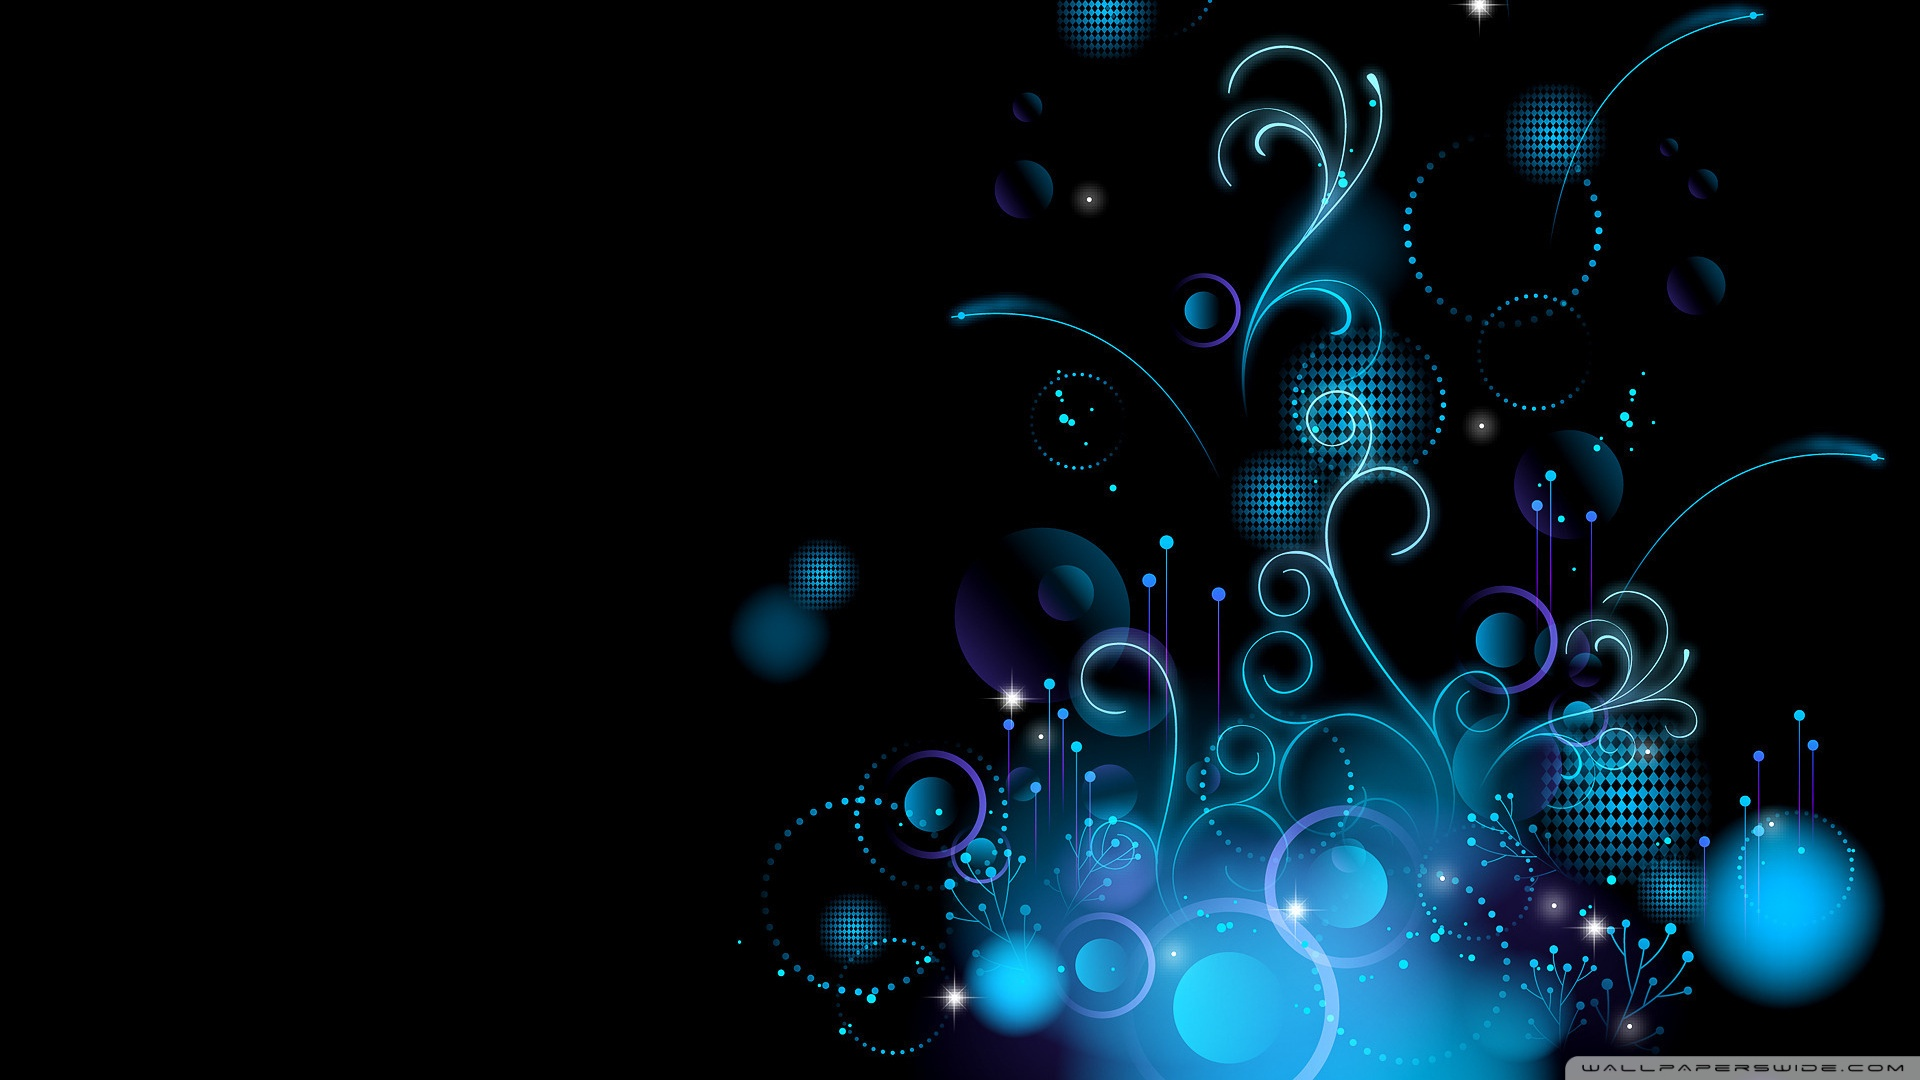 Colección Blue Design HD wallpapers